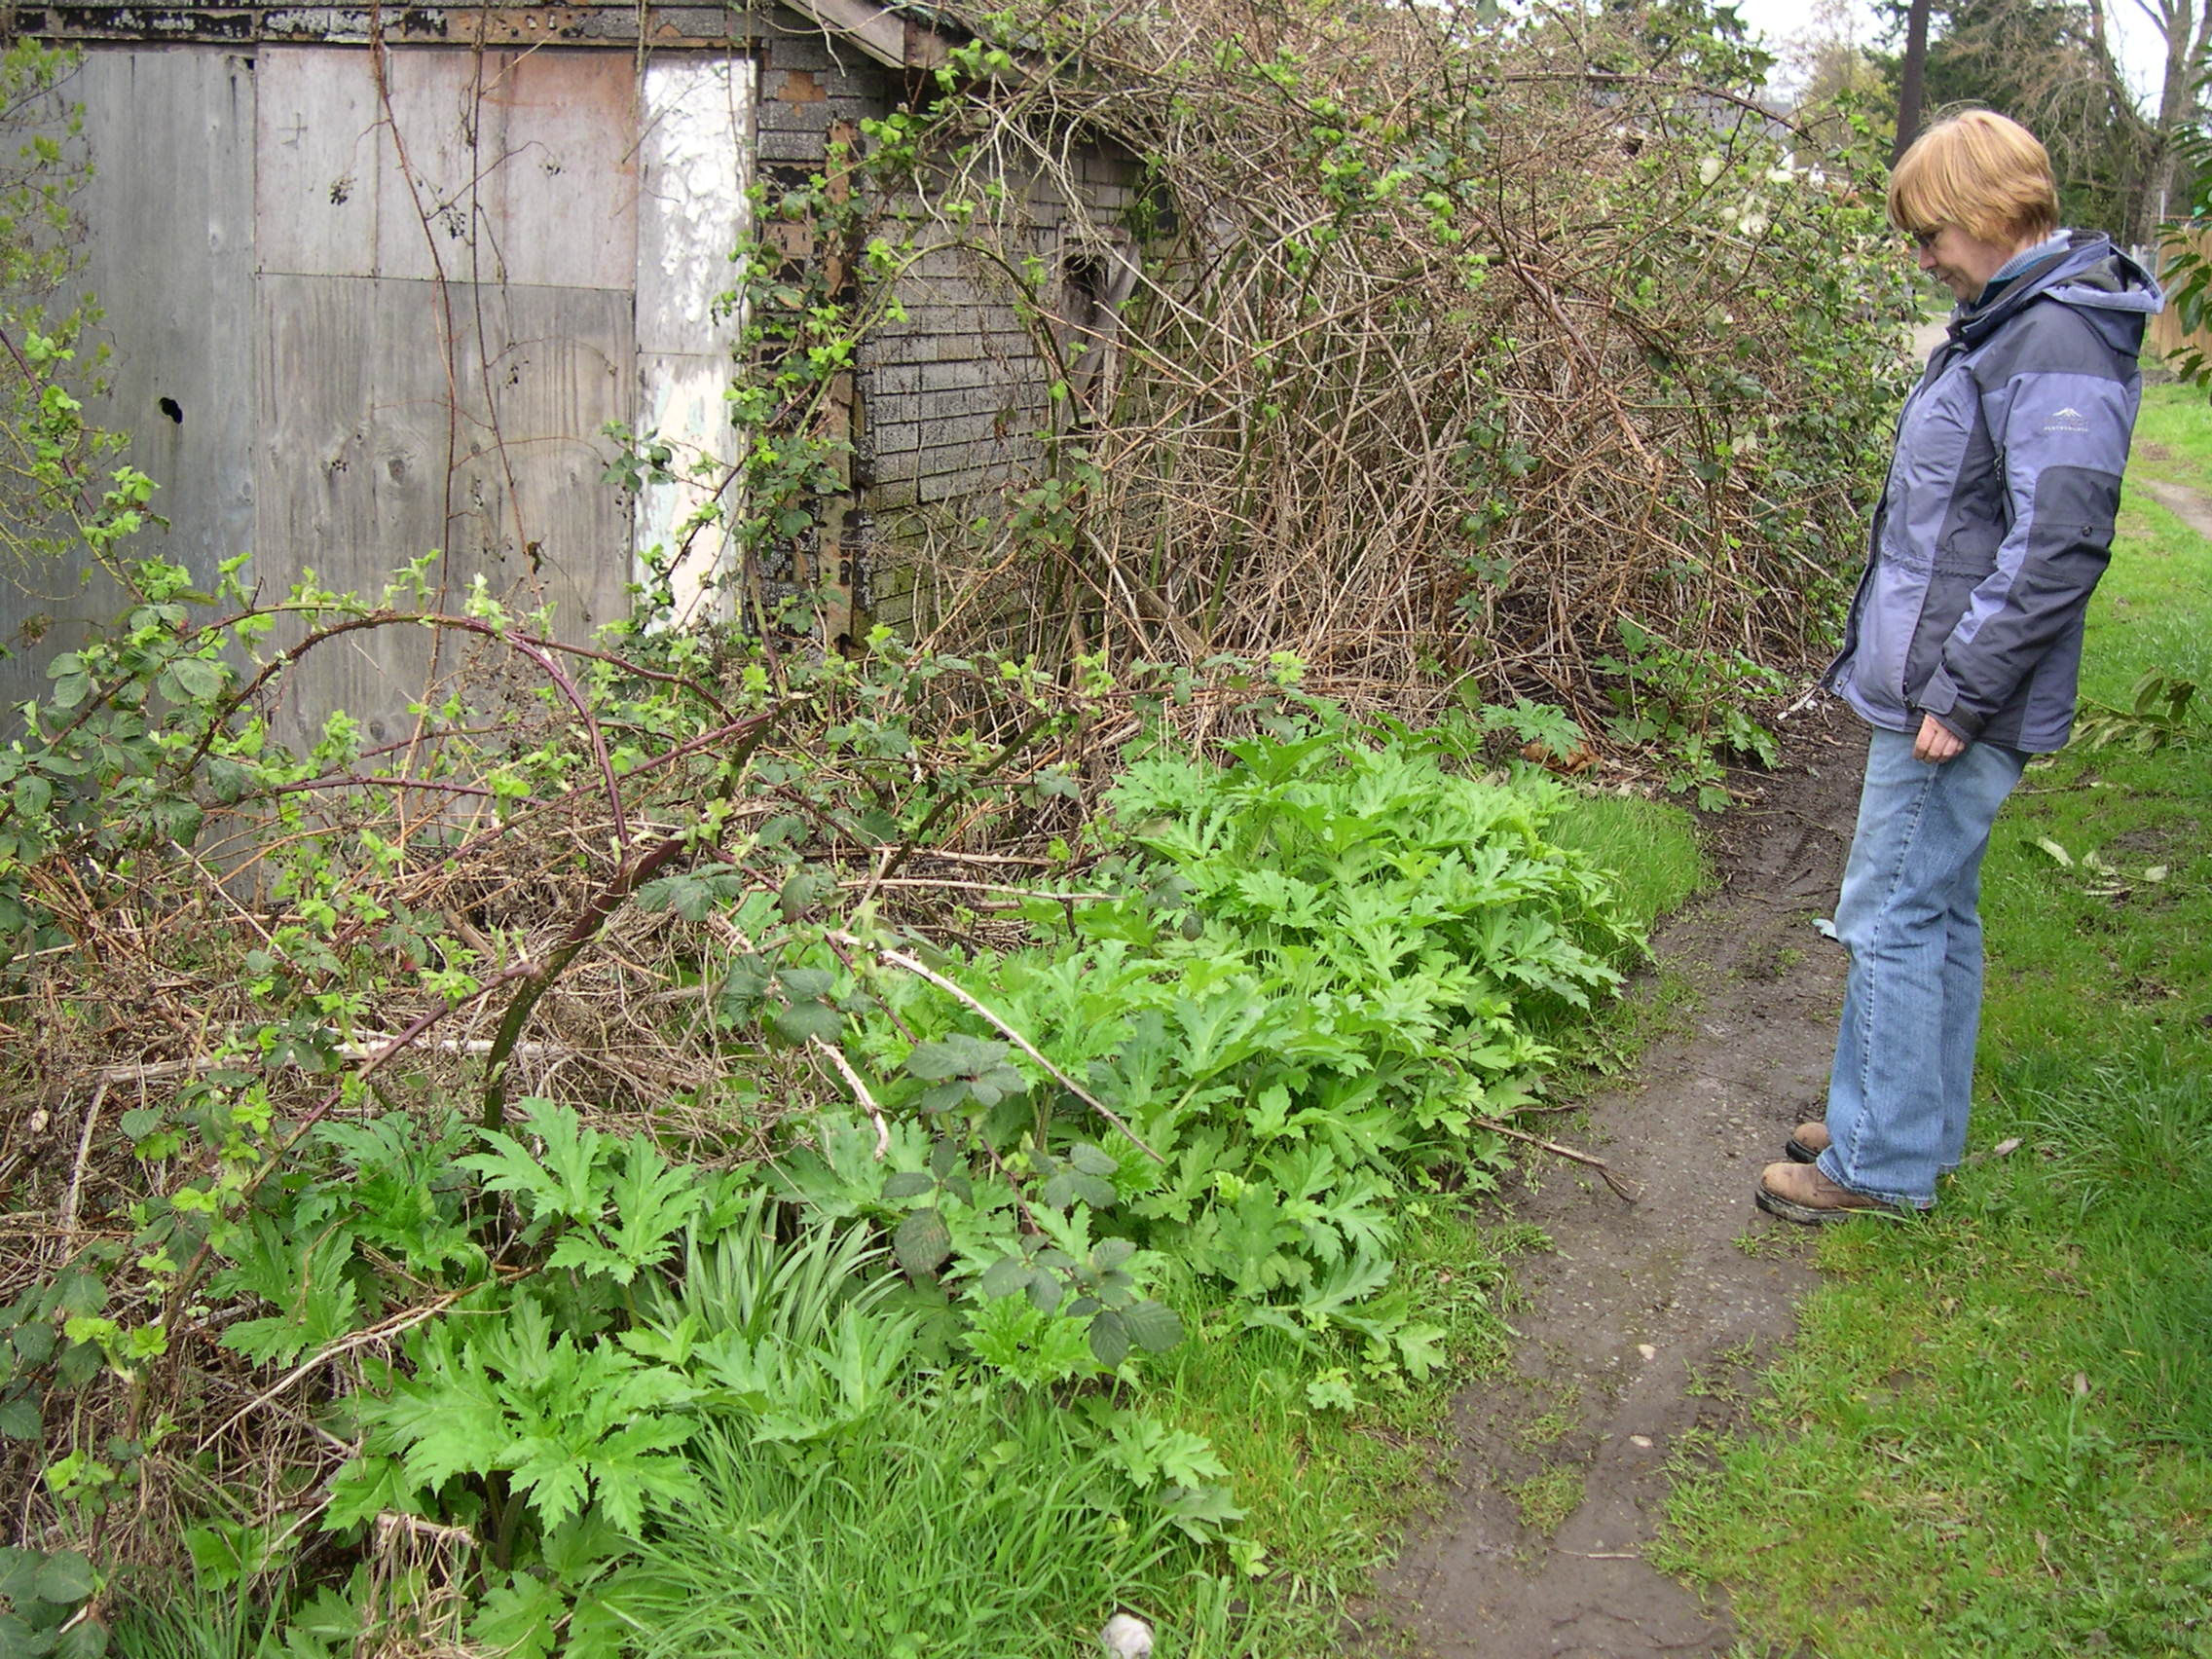 Giant hogweed early season plants in an alley